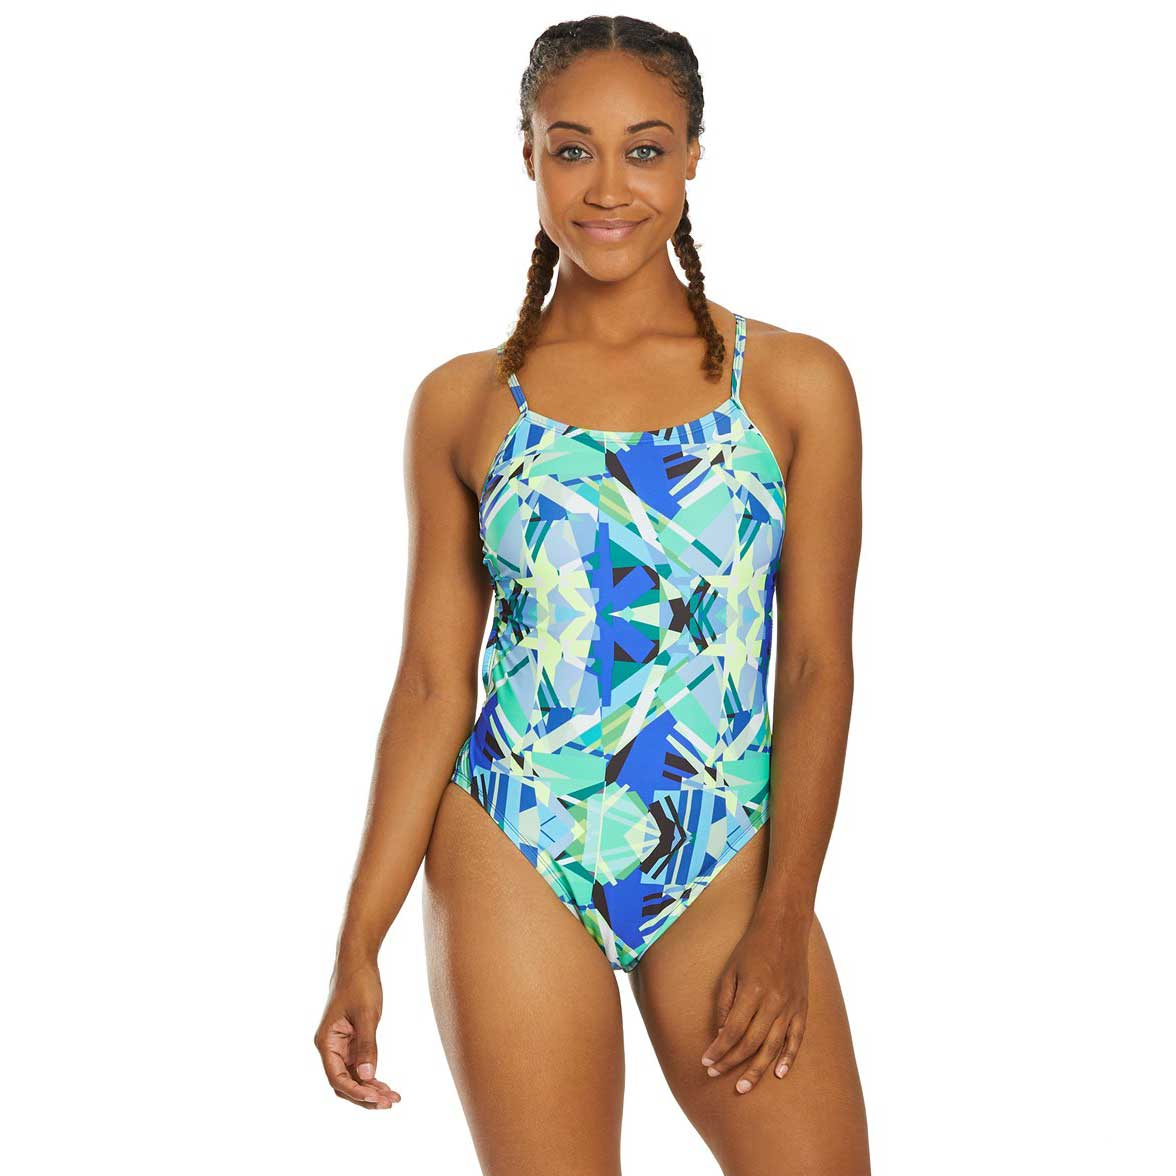 Nike Prisma Punch Cutout One Piece